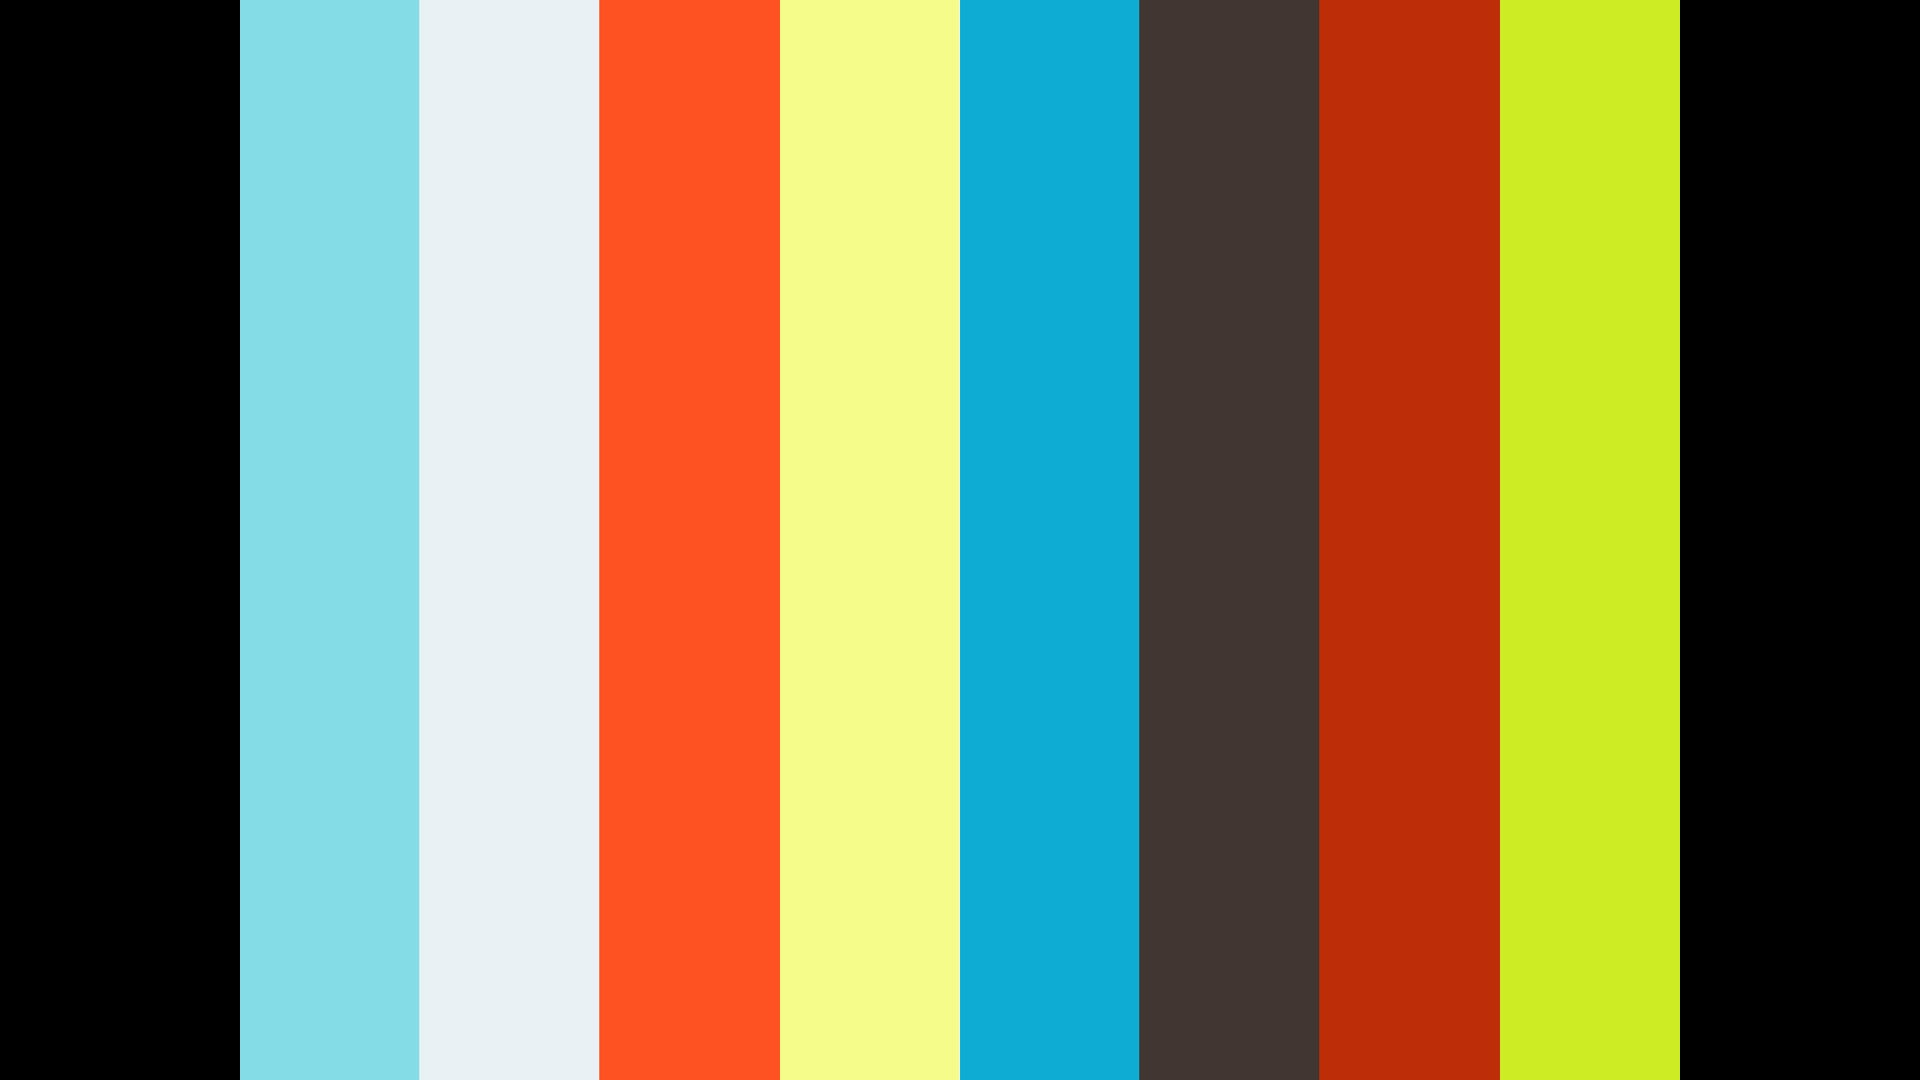 Cindy McCain, Lifetime Achievement Award Winner, Women of Achievement 2019